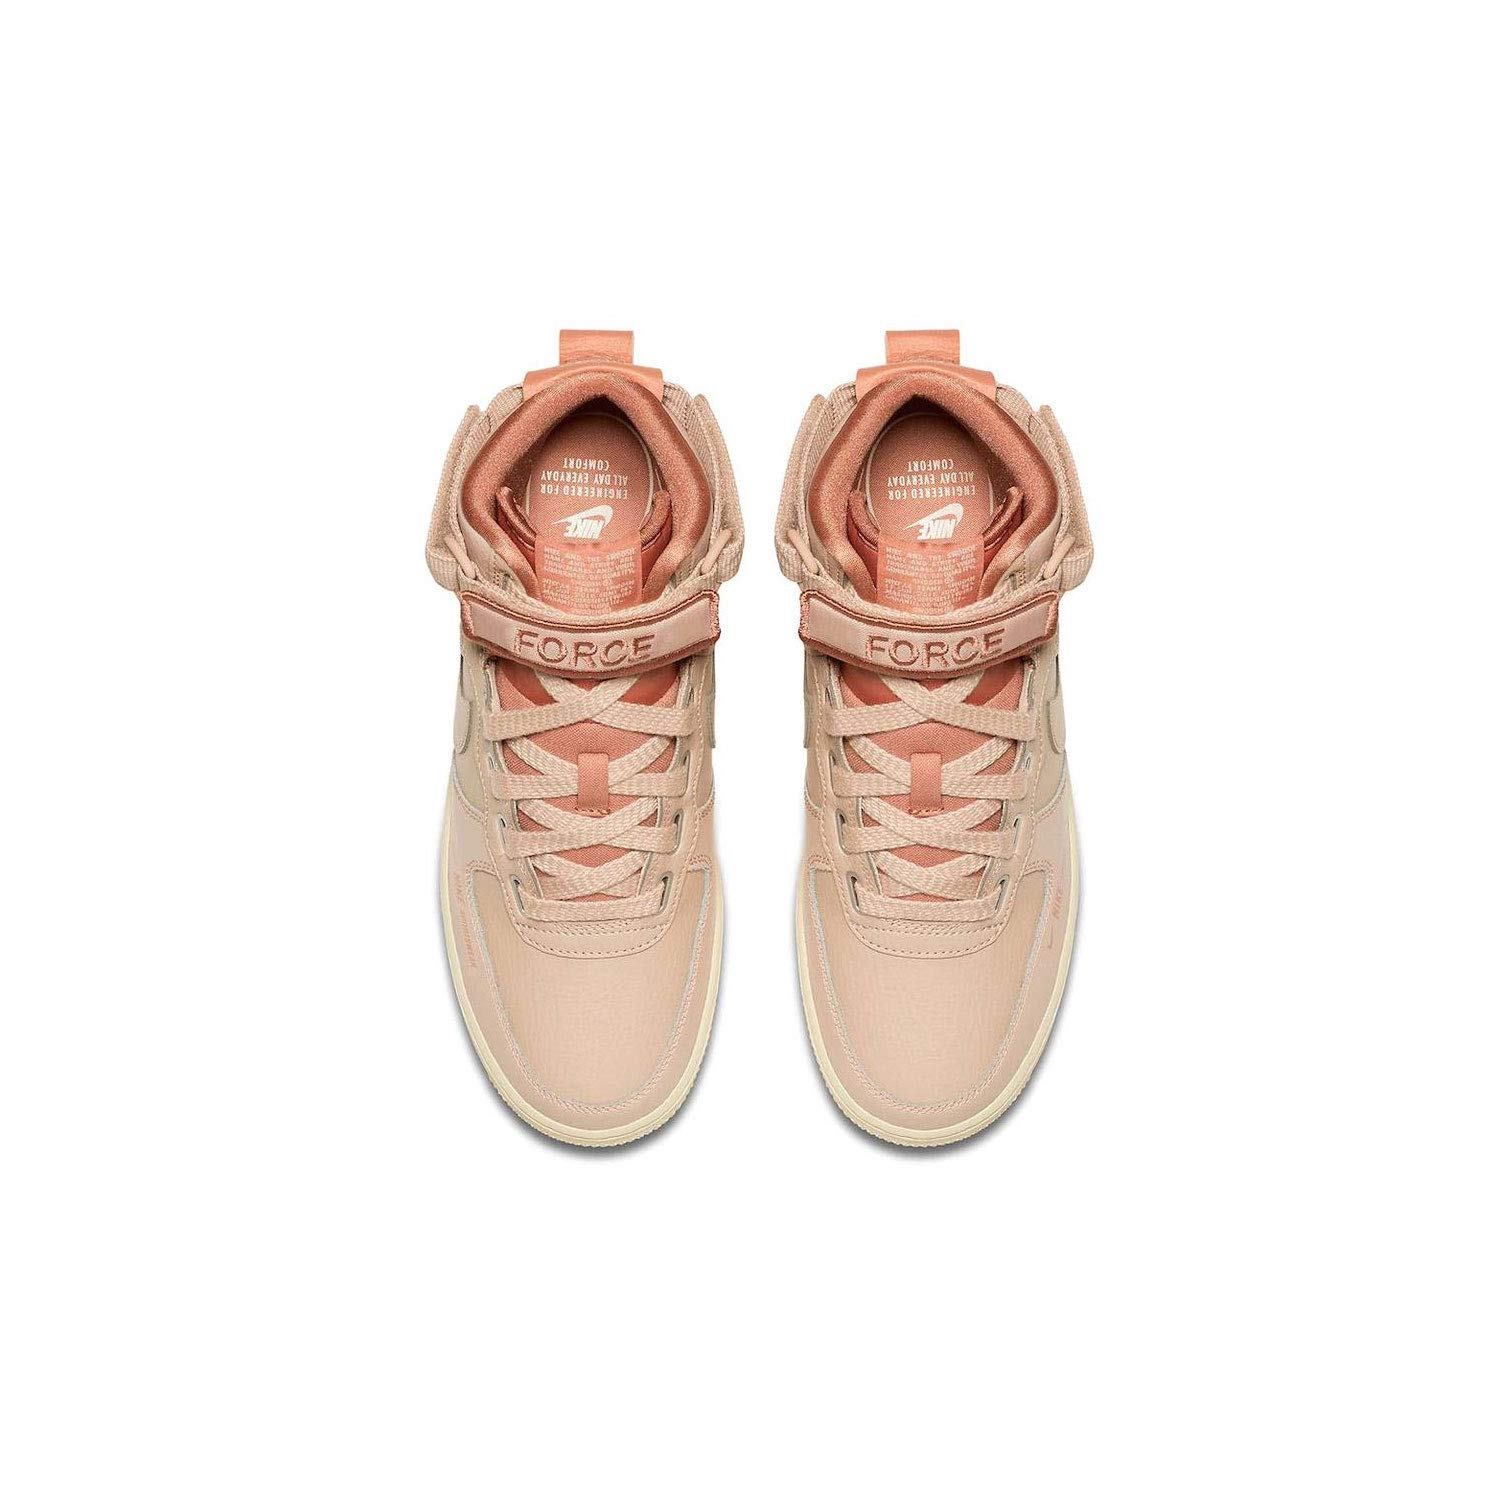 Nike Air Force 1 High Utility Particle Beige Terra Blush LT Cream For Women AJ7311 200